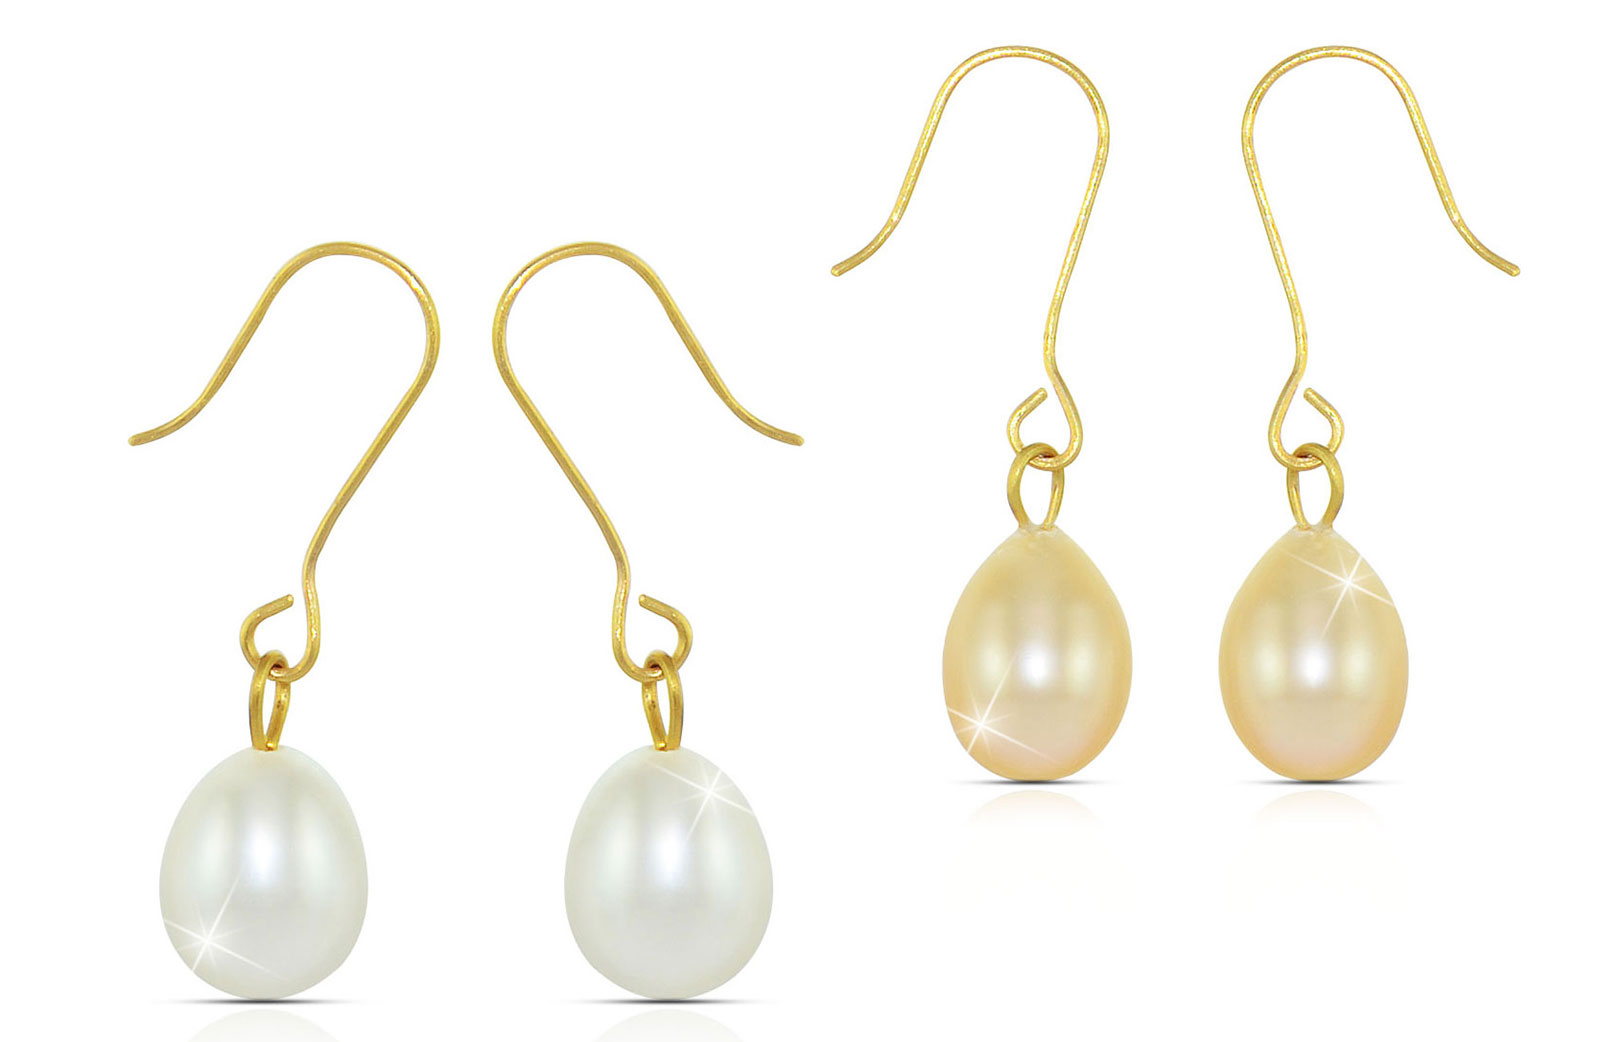 Vera Perla 10K Gold Genuine 7mm White and Peach Pearl Delicate 2 Pairs Earrings